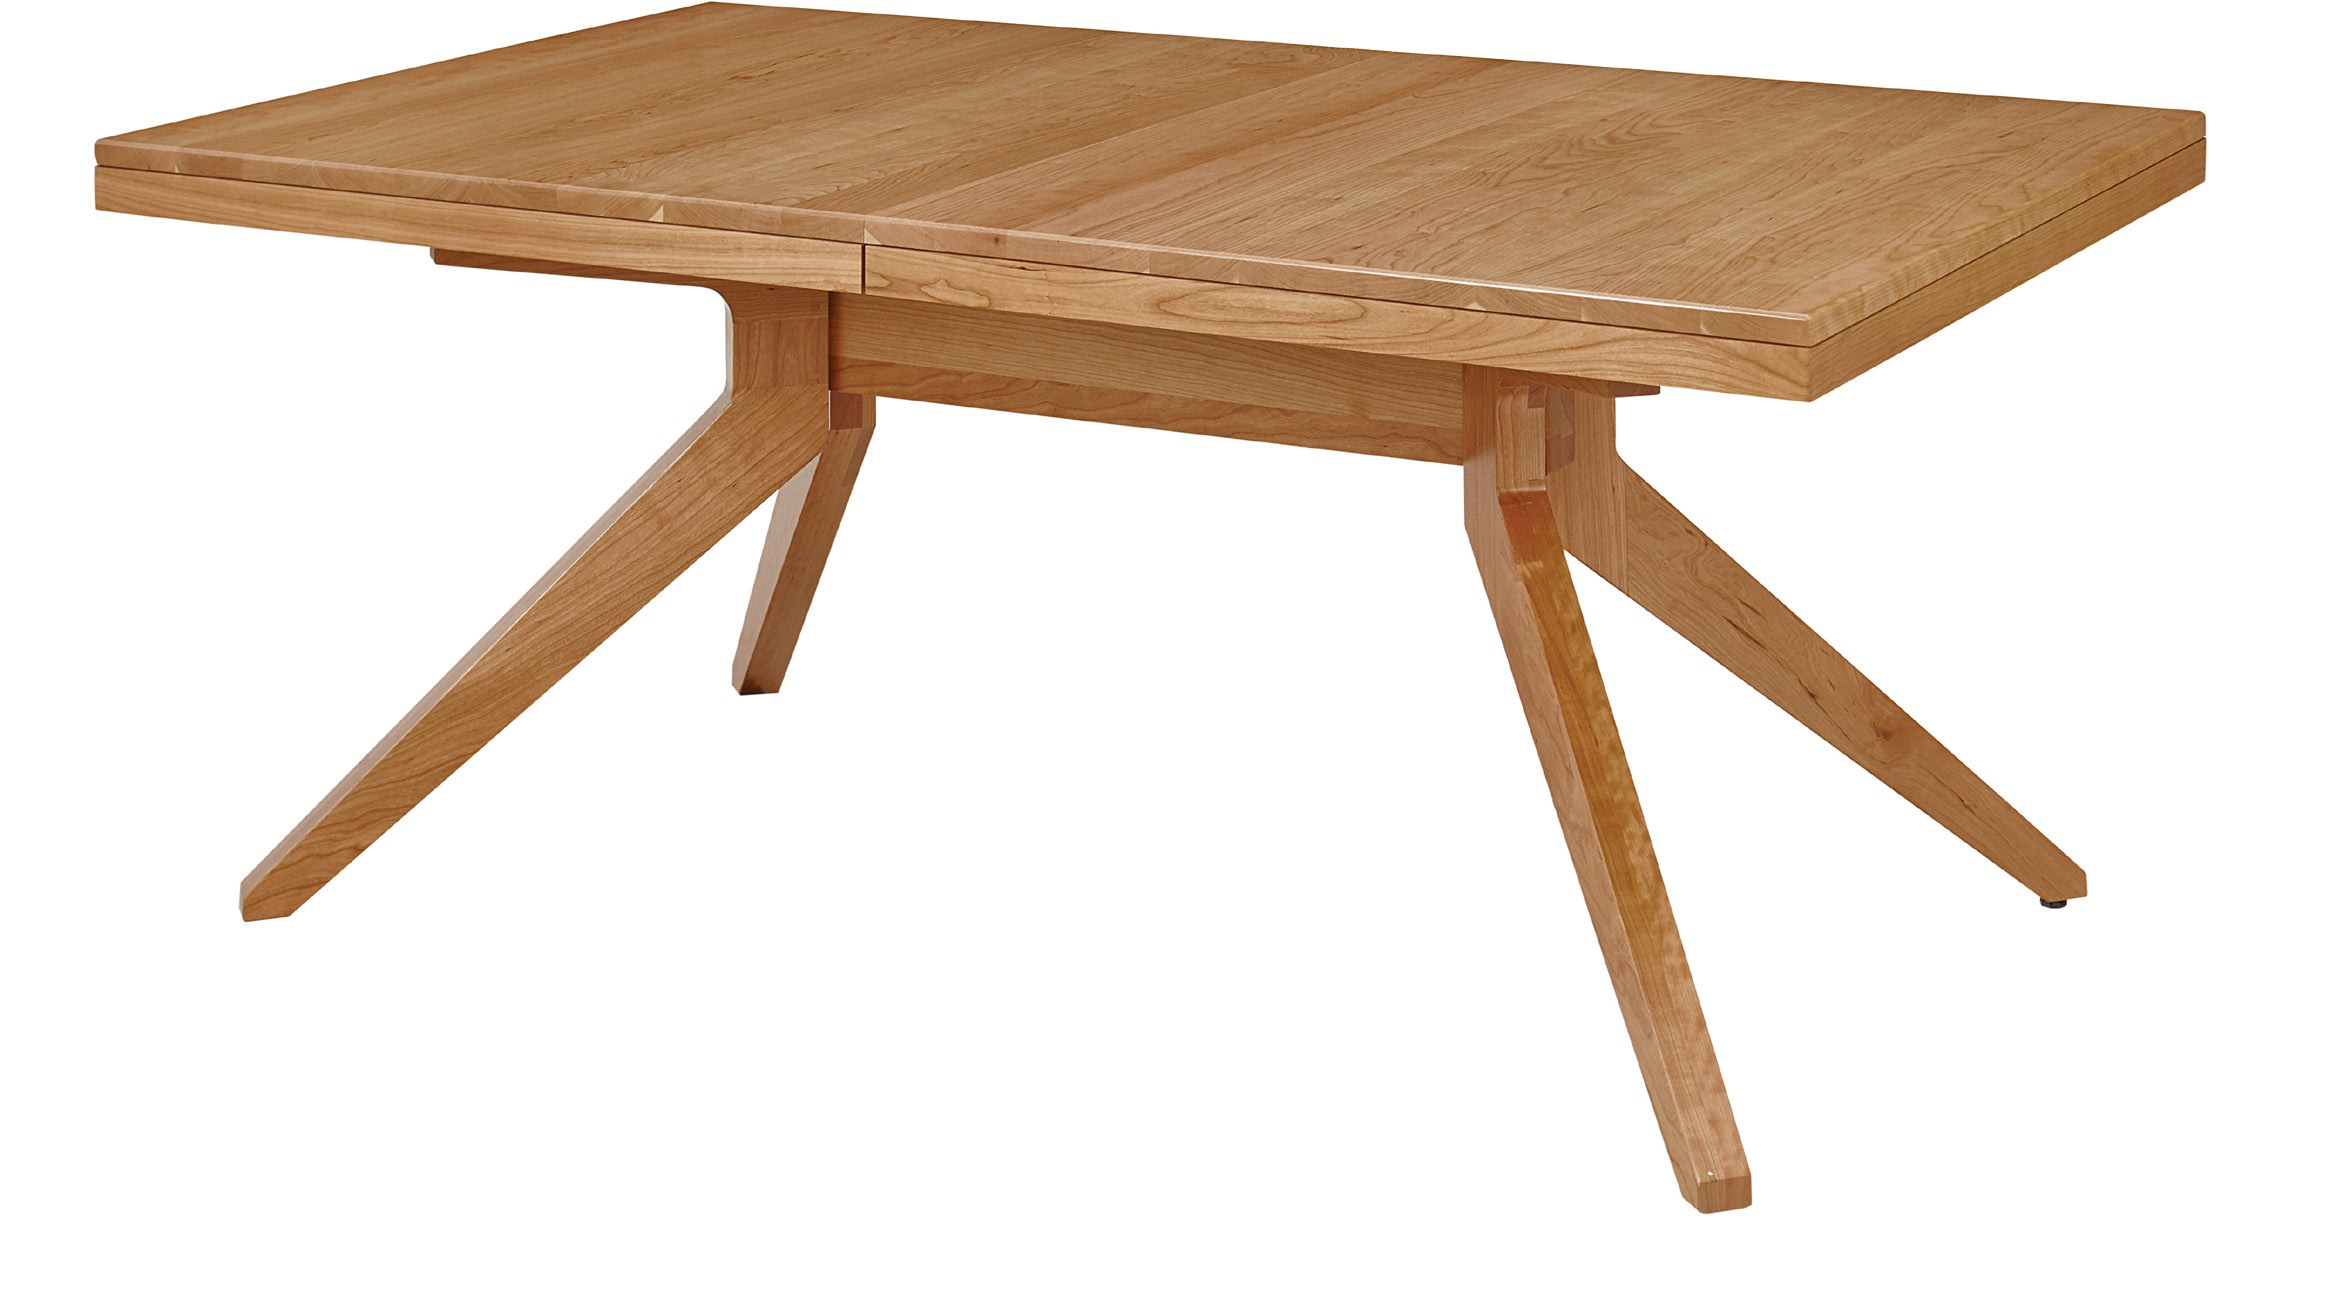 The Country Woodshop Dining Room Sonora Table DT Sonora At Treeforms  Furniture Gallery